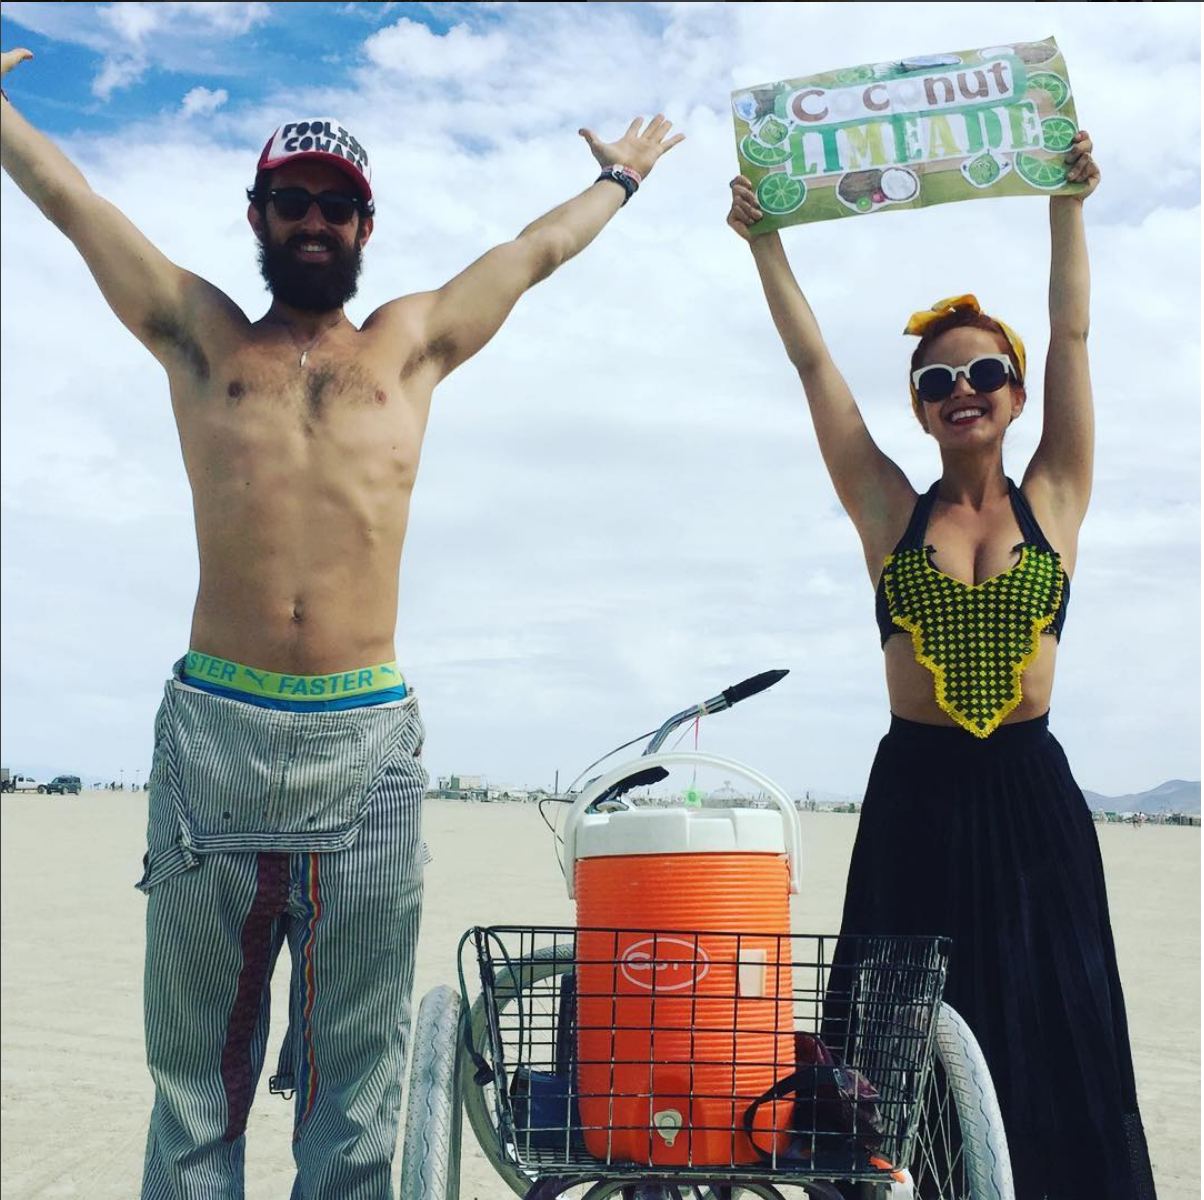 Lauren and I at Burning Man in 2016 serving Coconut Limeade to all in our path.